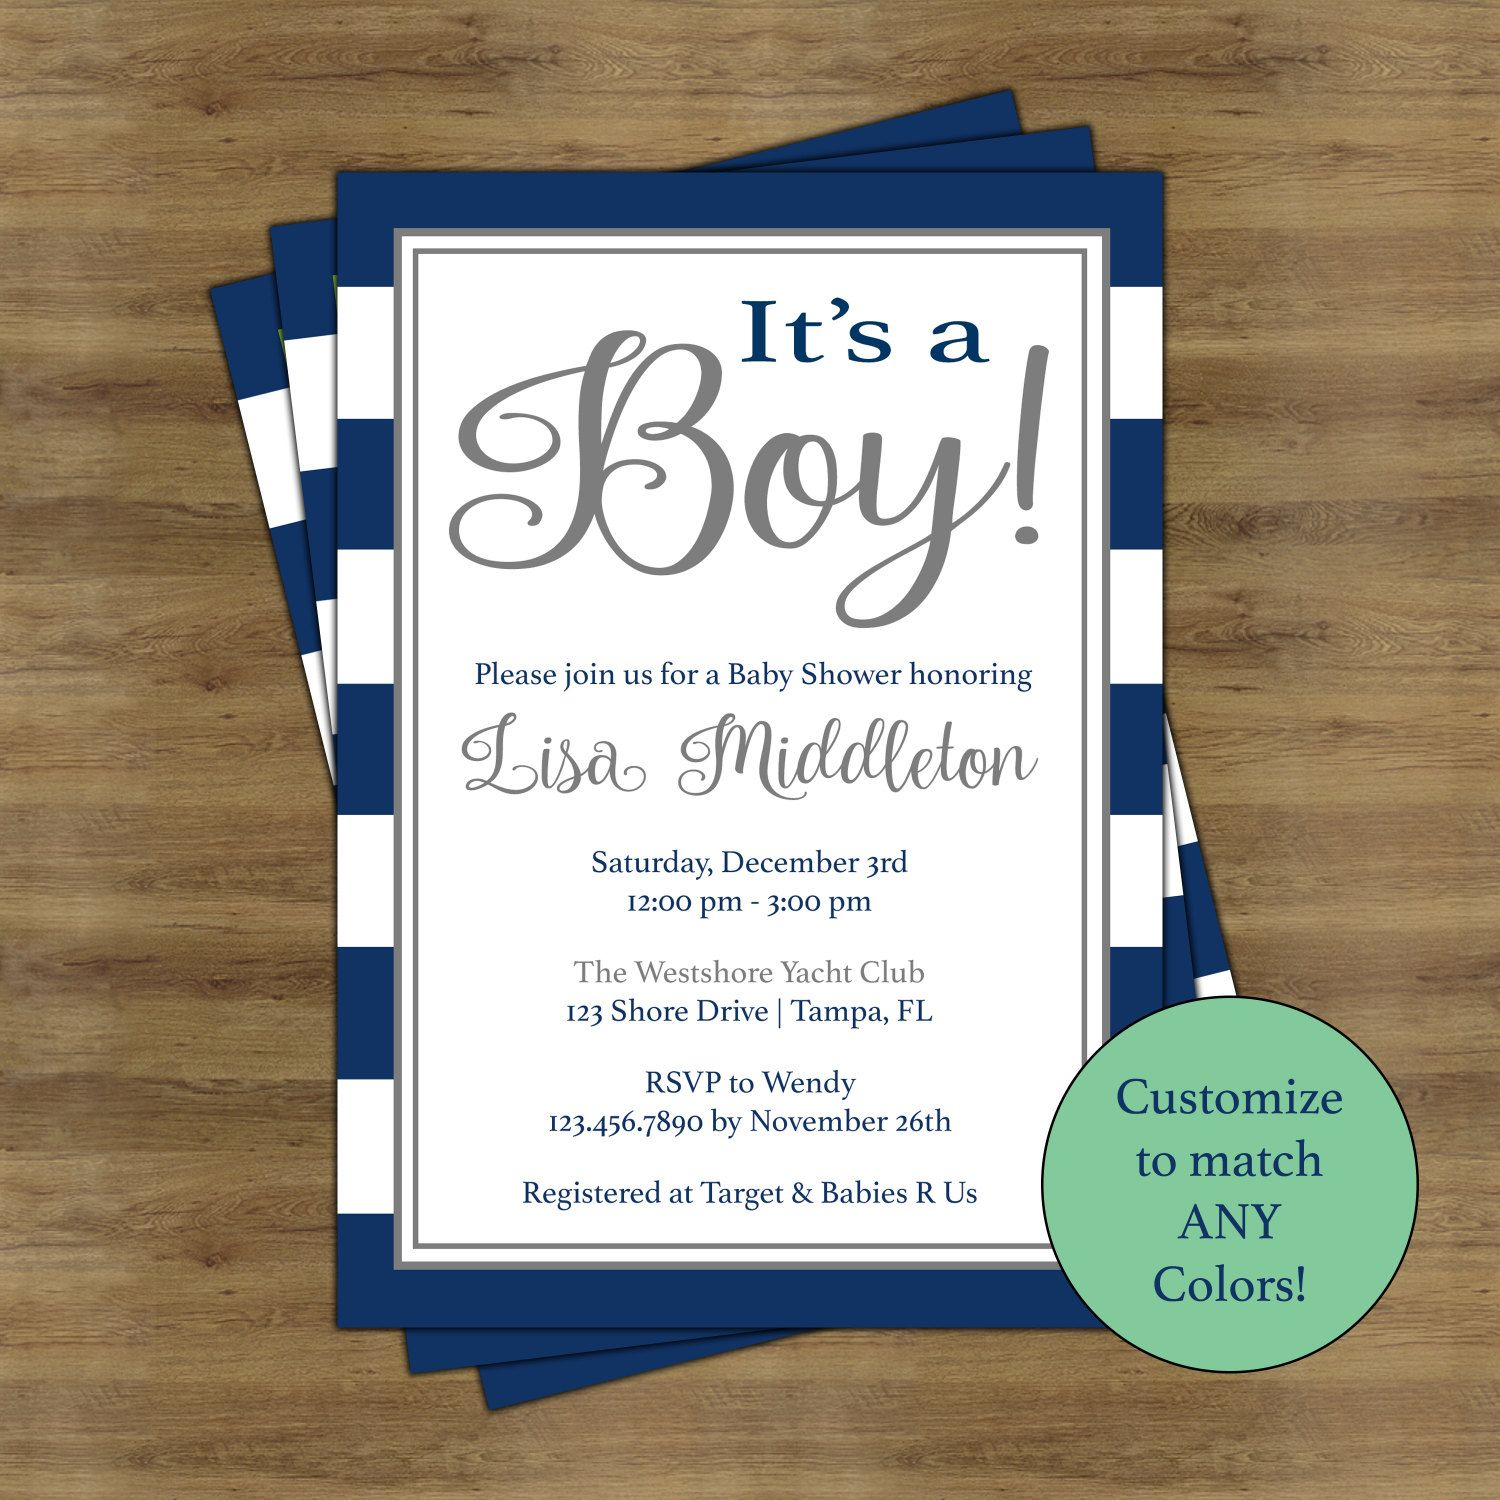 Fancy Its A Boy Baby Shower Invitations For Boys; Simple Baby Shower with New Baby Boy Baby Shower Invitations